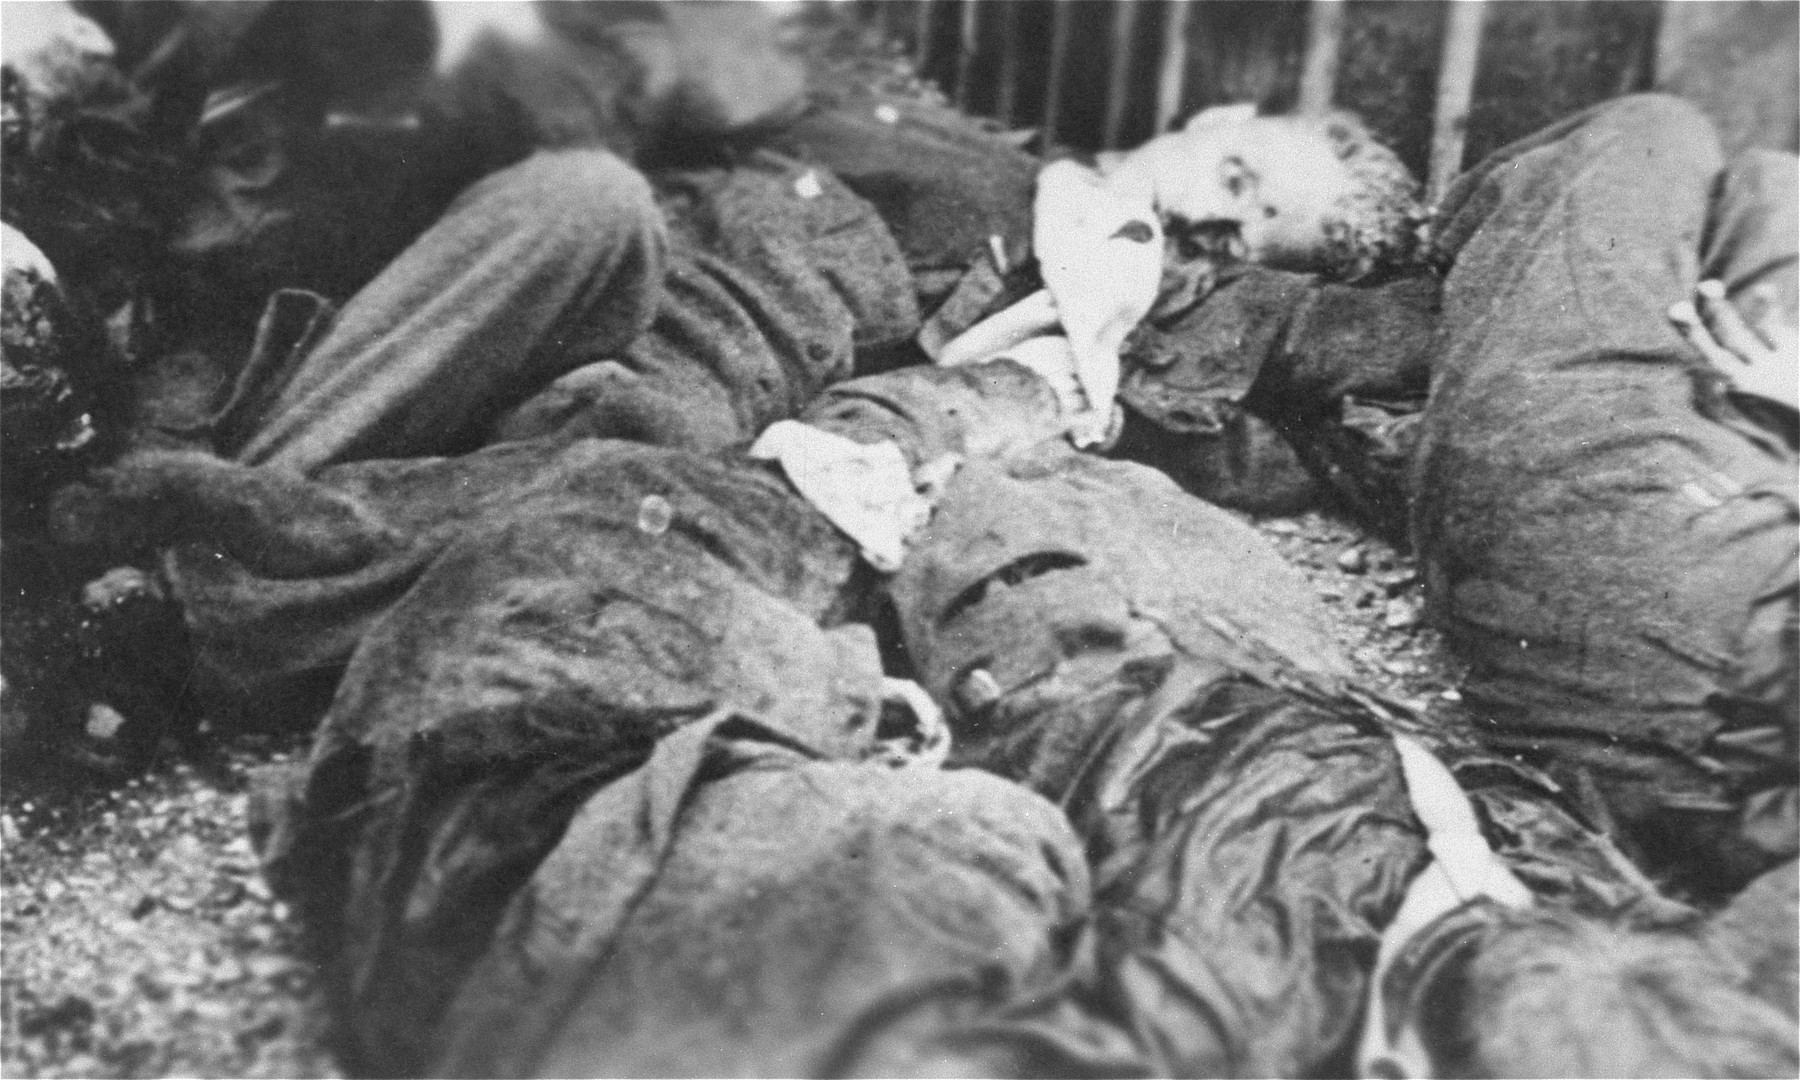 The corpses of SS guards executed by American troops during the liberation of the camp and piled behind the crematorium.